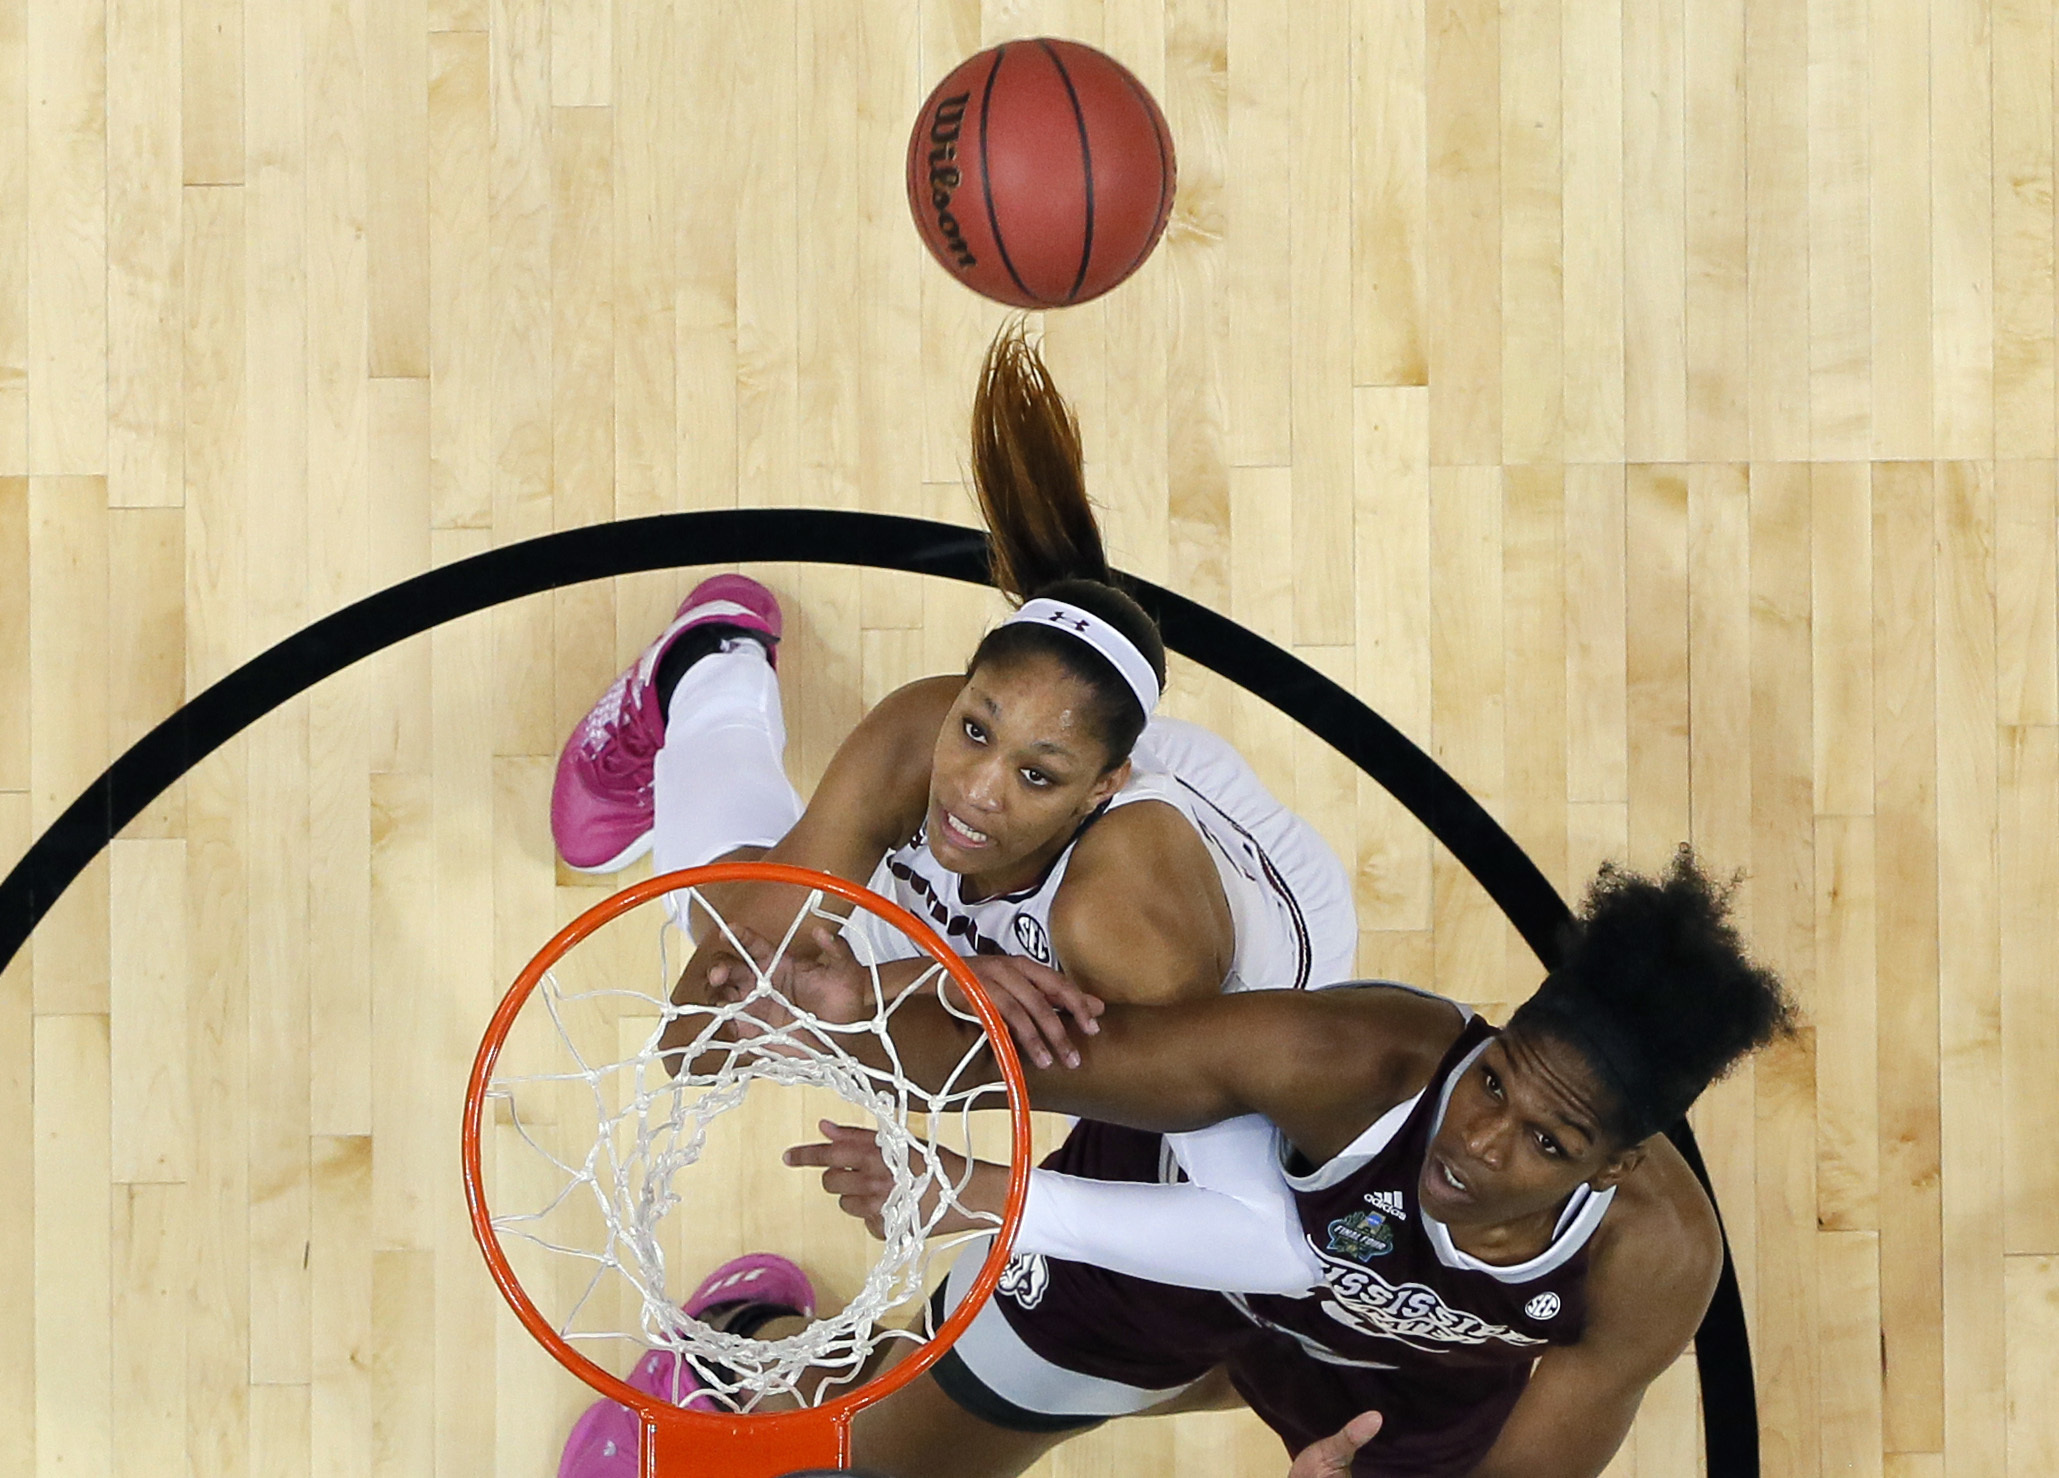 South Carolina forward A'ja Wilson, left, and Mississippi State center Teaira McCowan, right, battle for a rebound during the first half in the final of NCAA women's Final Four college basketball tournament, Sunday, April 2, 2017, in Dallas. (AP Photo/Ton